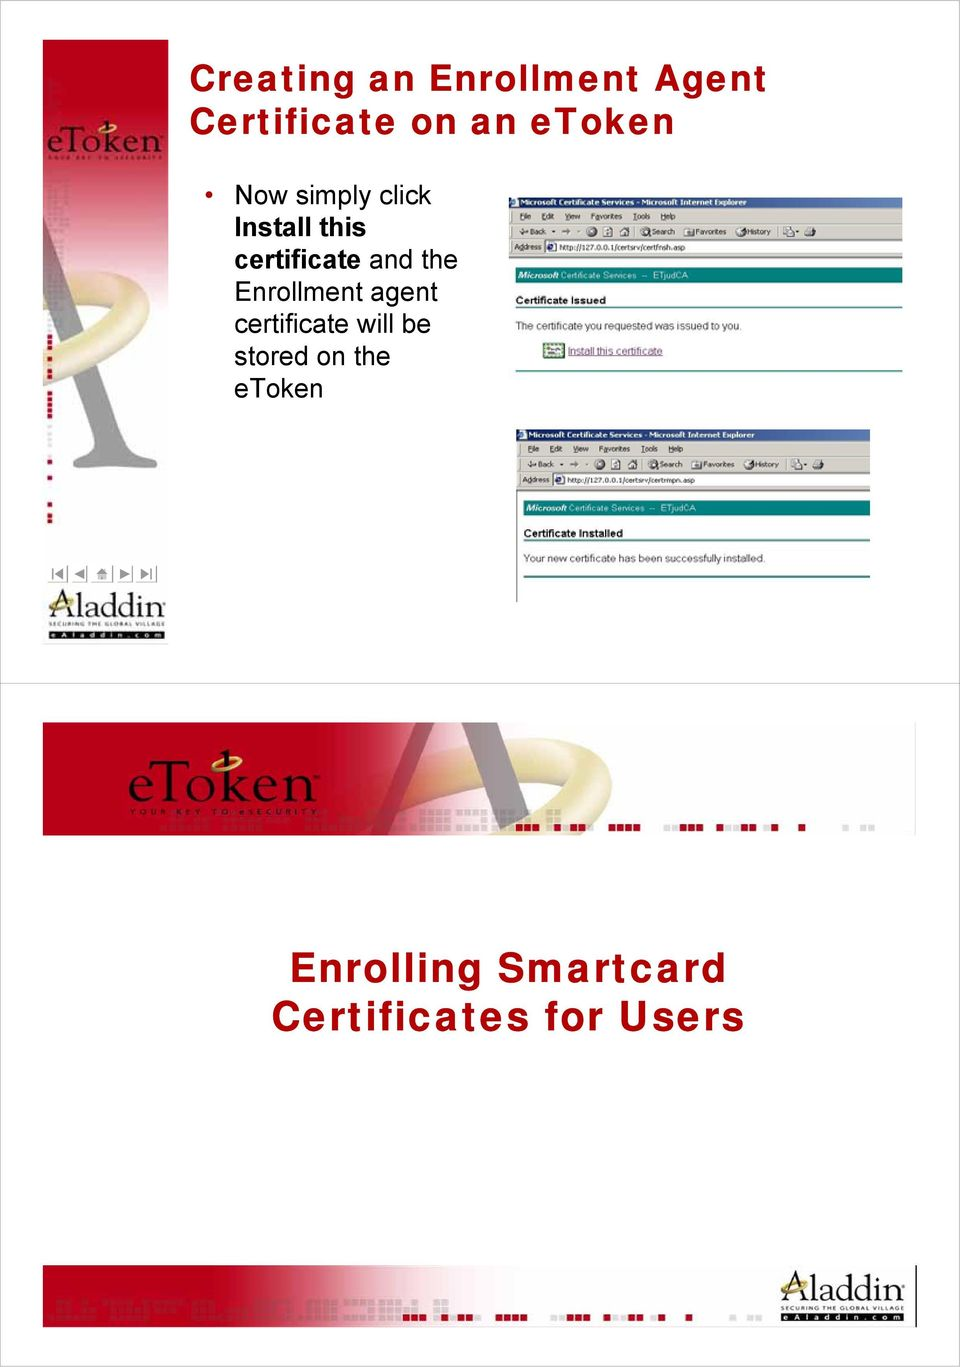 and the Enrollment agent certificate will be